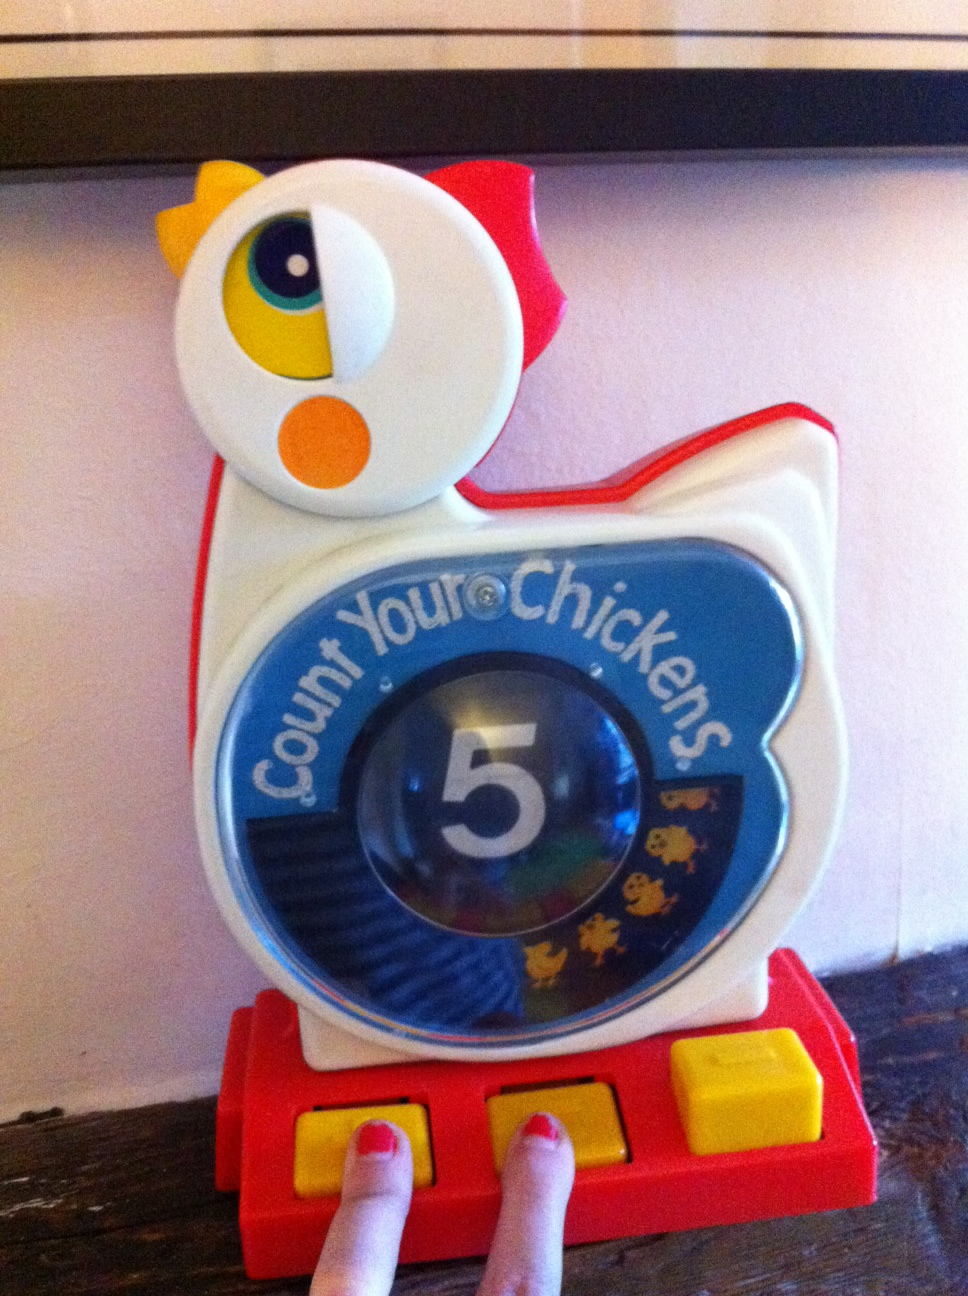 1970's Count Your Chickens Toy